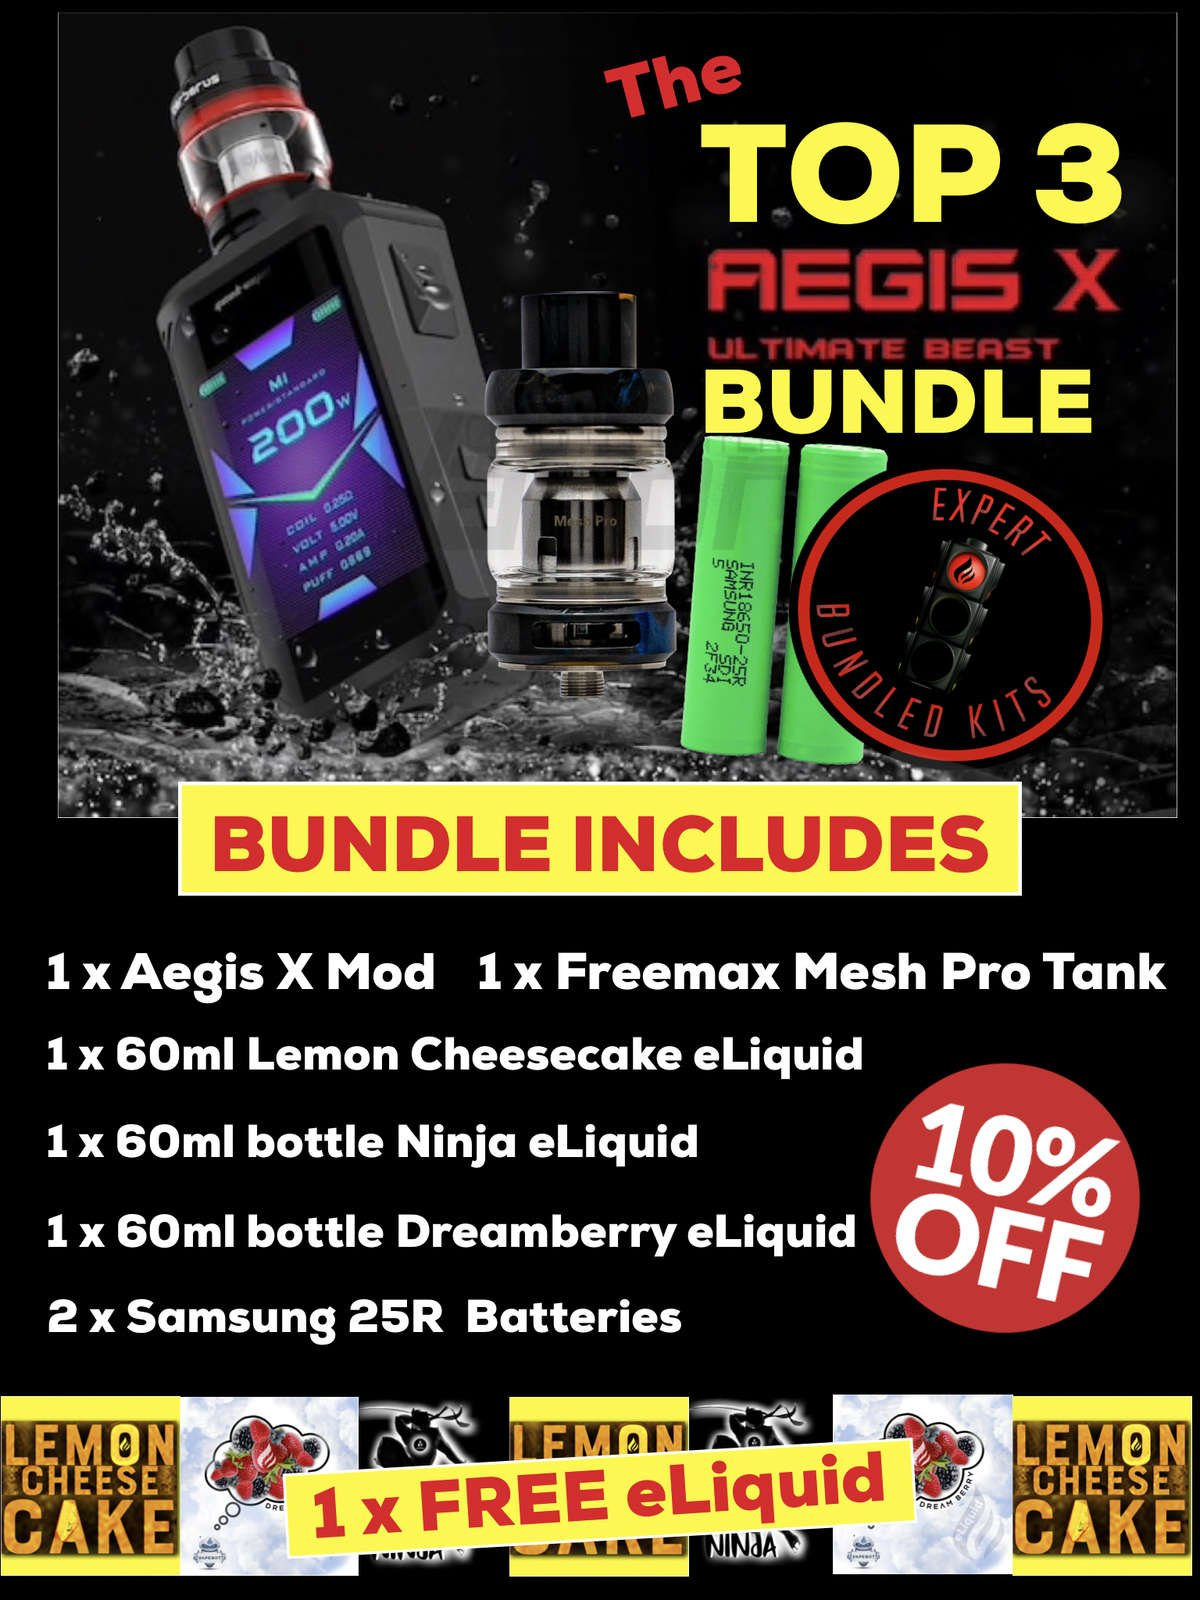 TOP 3 Aegis X Bundle